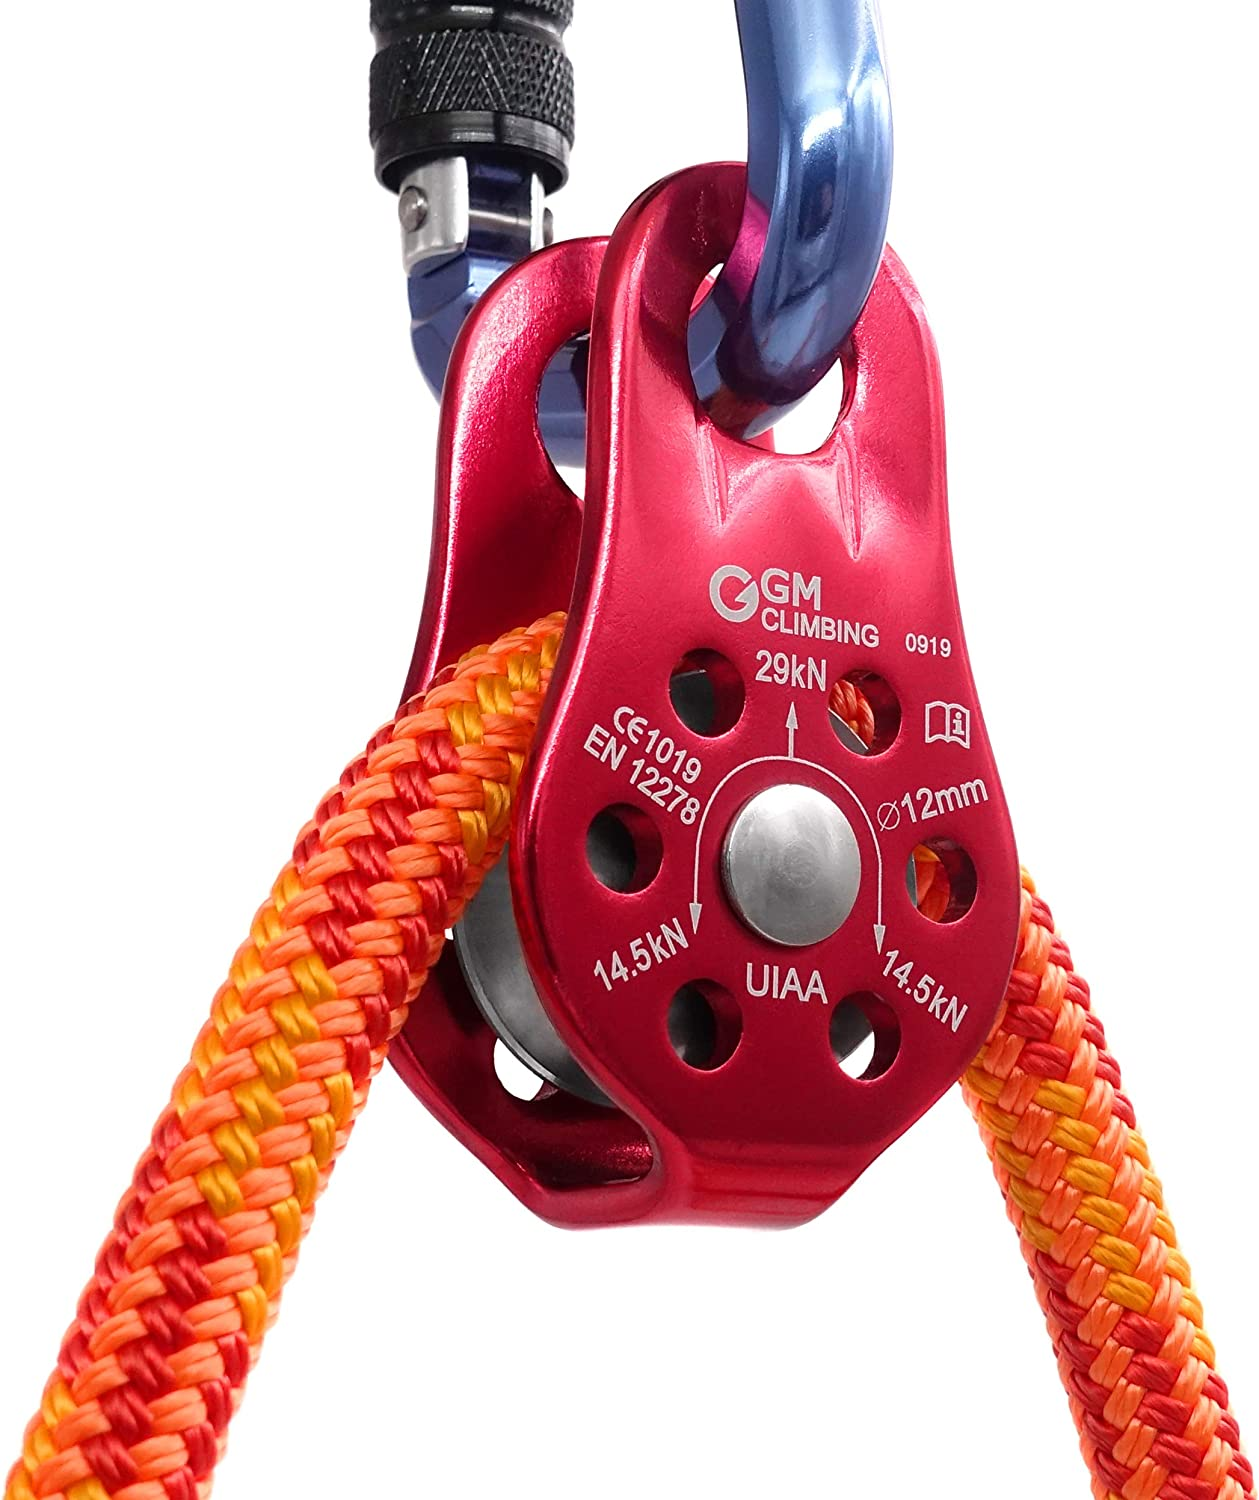 US STOCK Micro Pulley System Kit Set for 2:1 or 3:1 Climbing Arborist CE UIAA